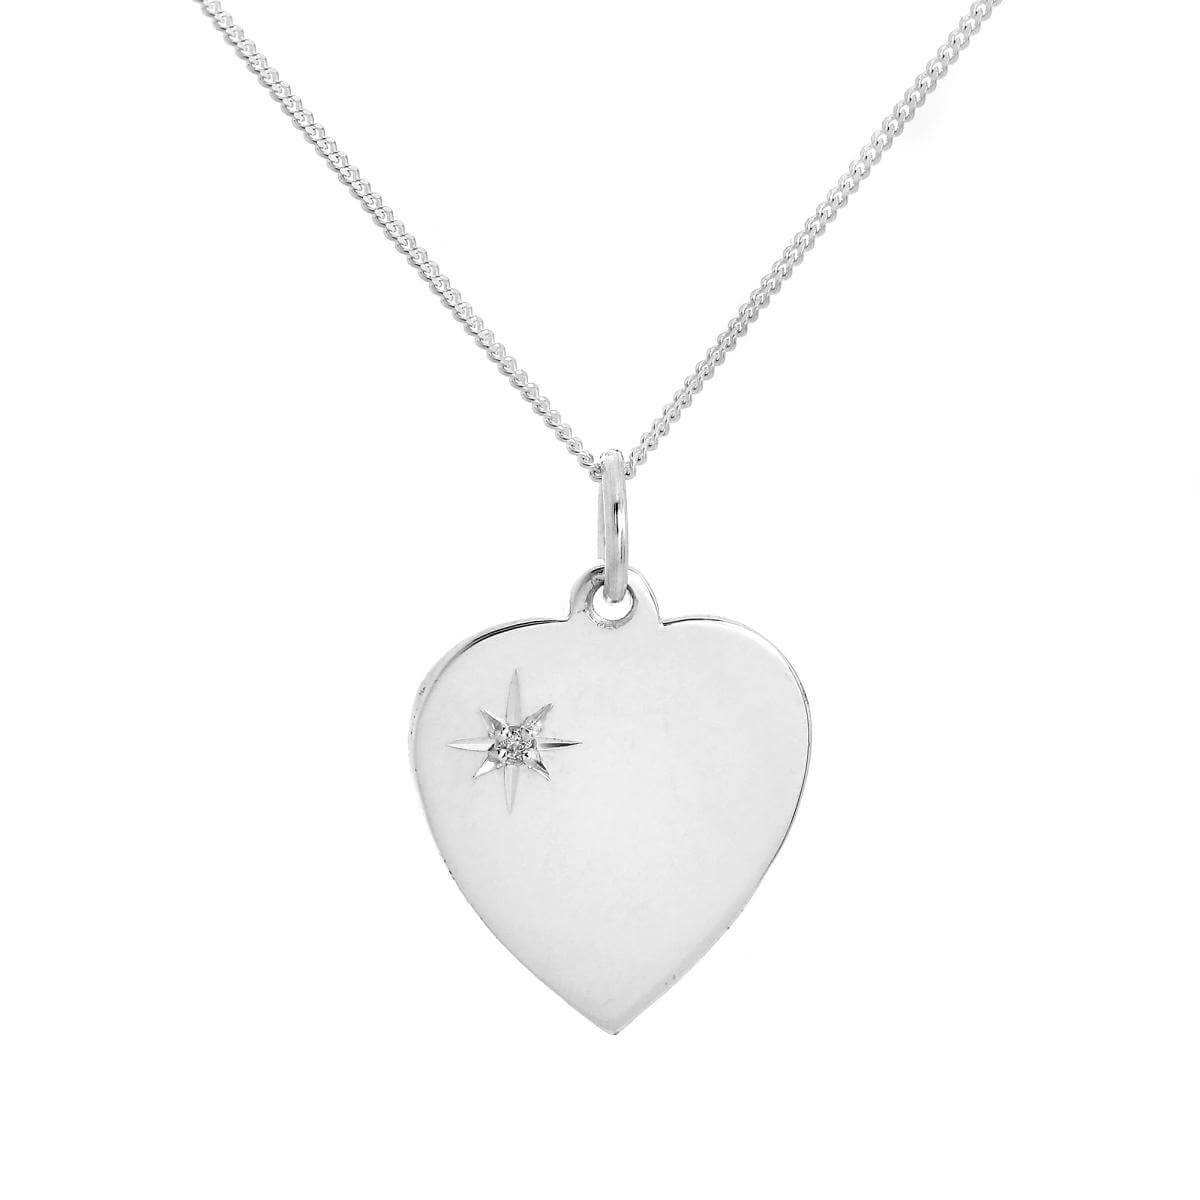 Sterling Silver & Diamond Engravable Heart Pendant Necklace